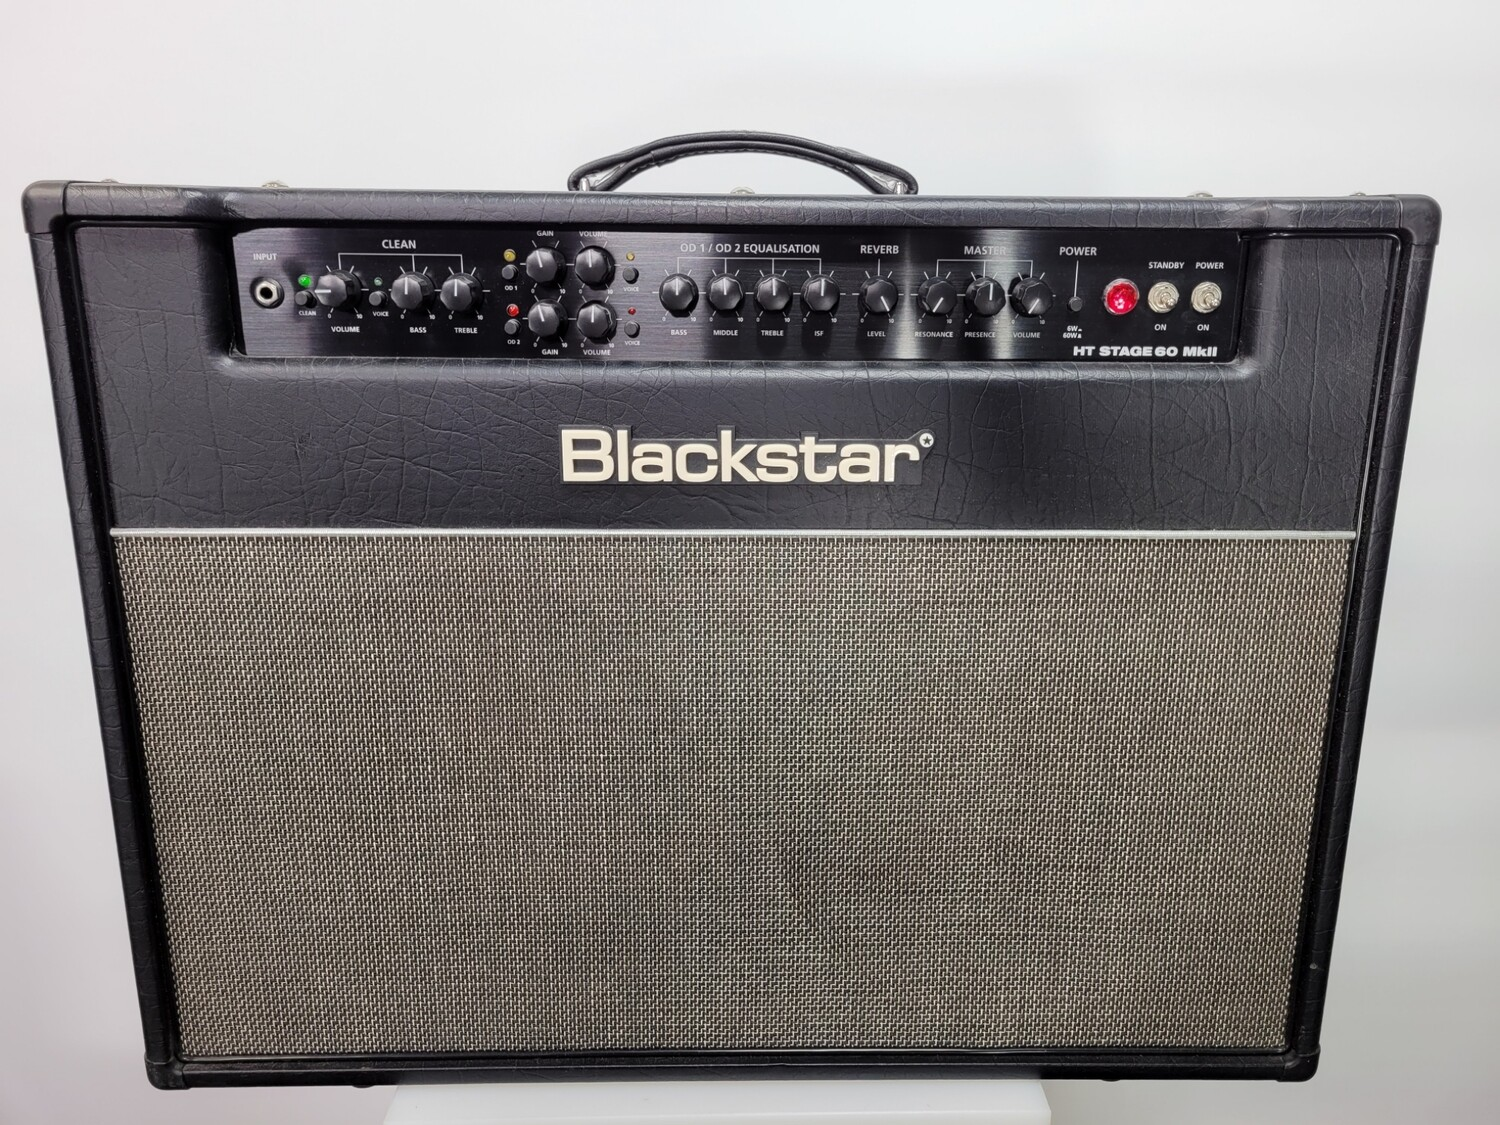 HT STAGE 60 212 MKII